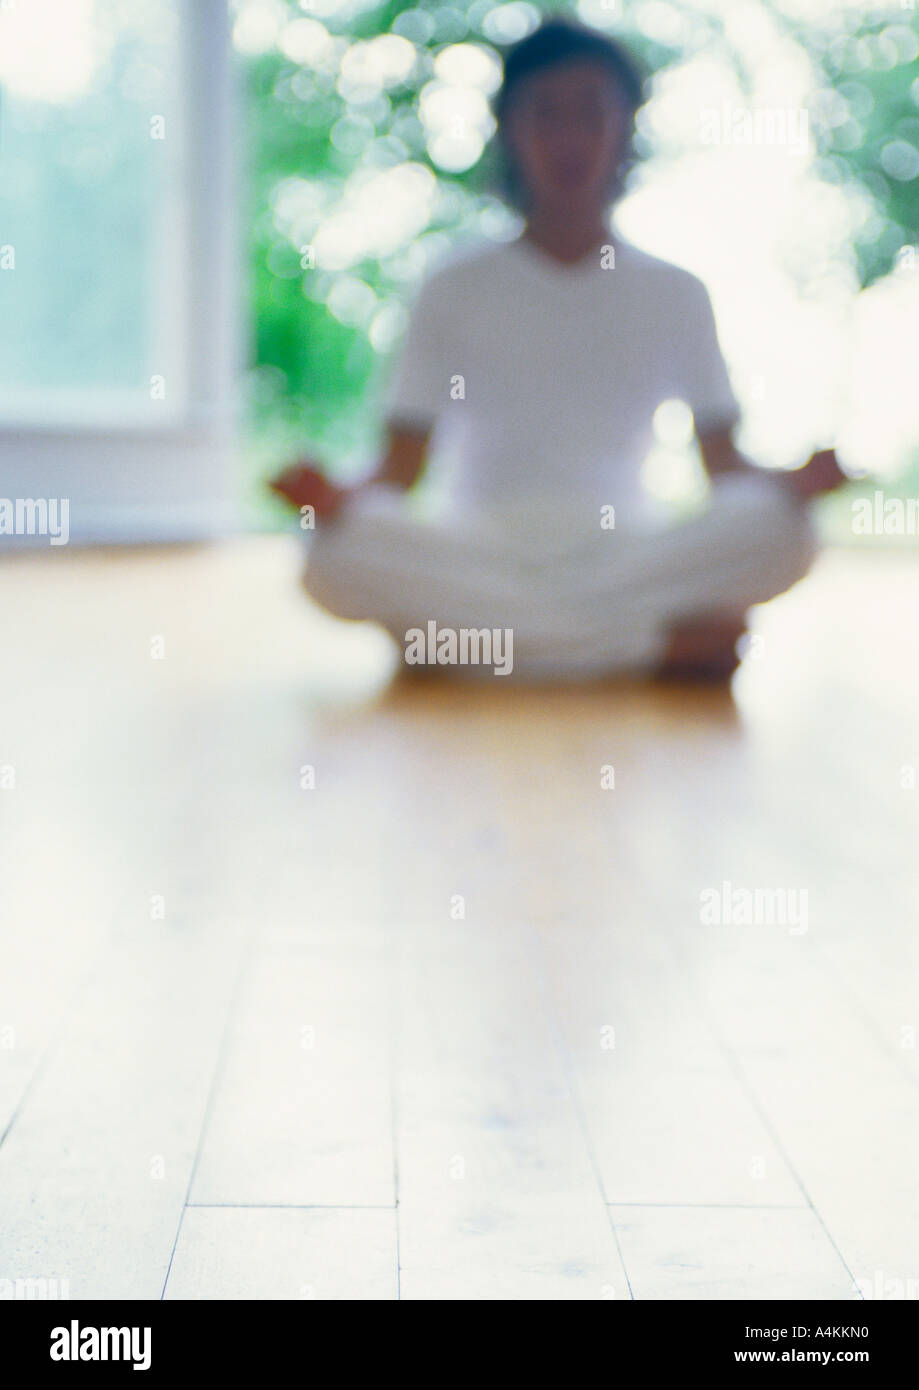 Person meditating in lotus position on floor, blurred - Stock Image